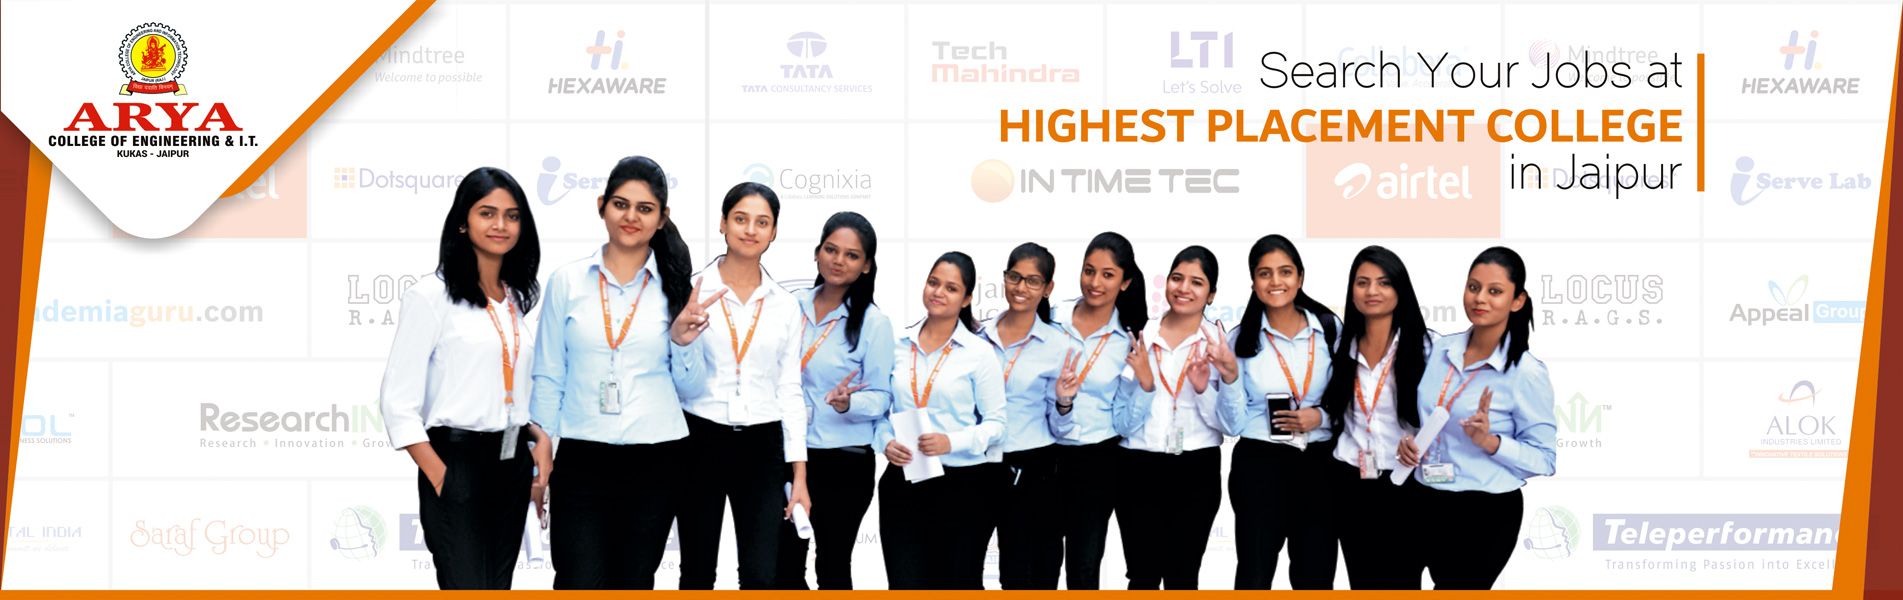 Search-Your-Jobs-at-Highest-Placement-College-in-Jaipur